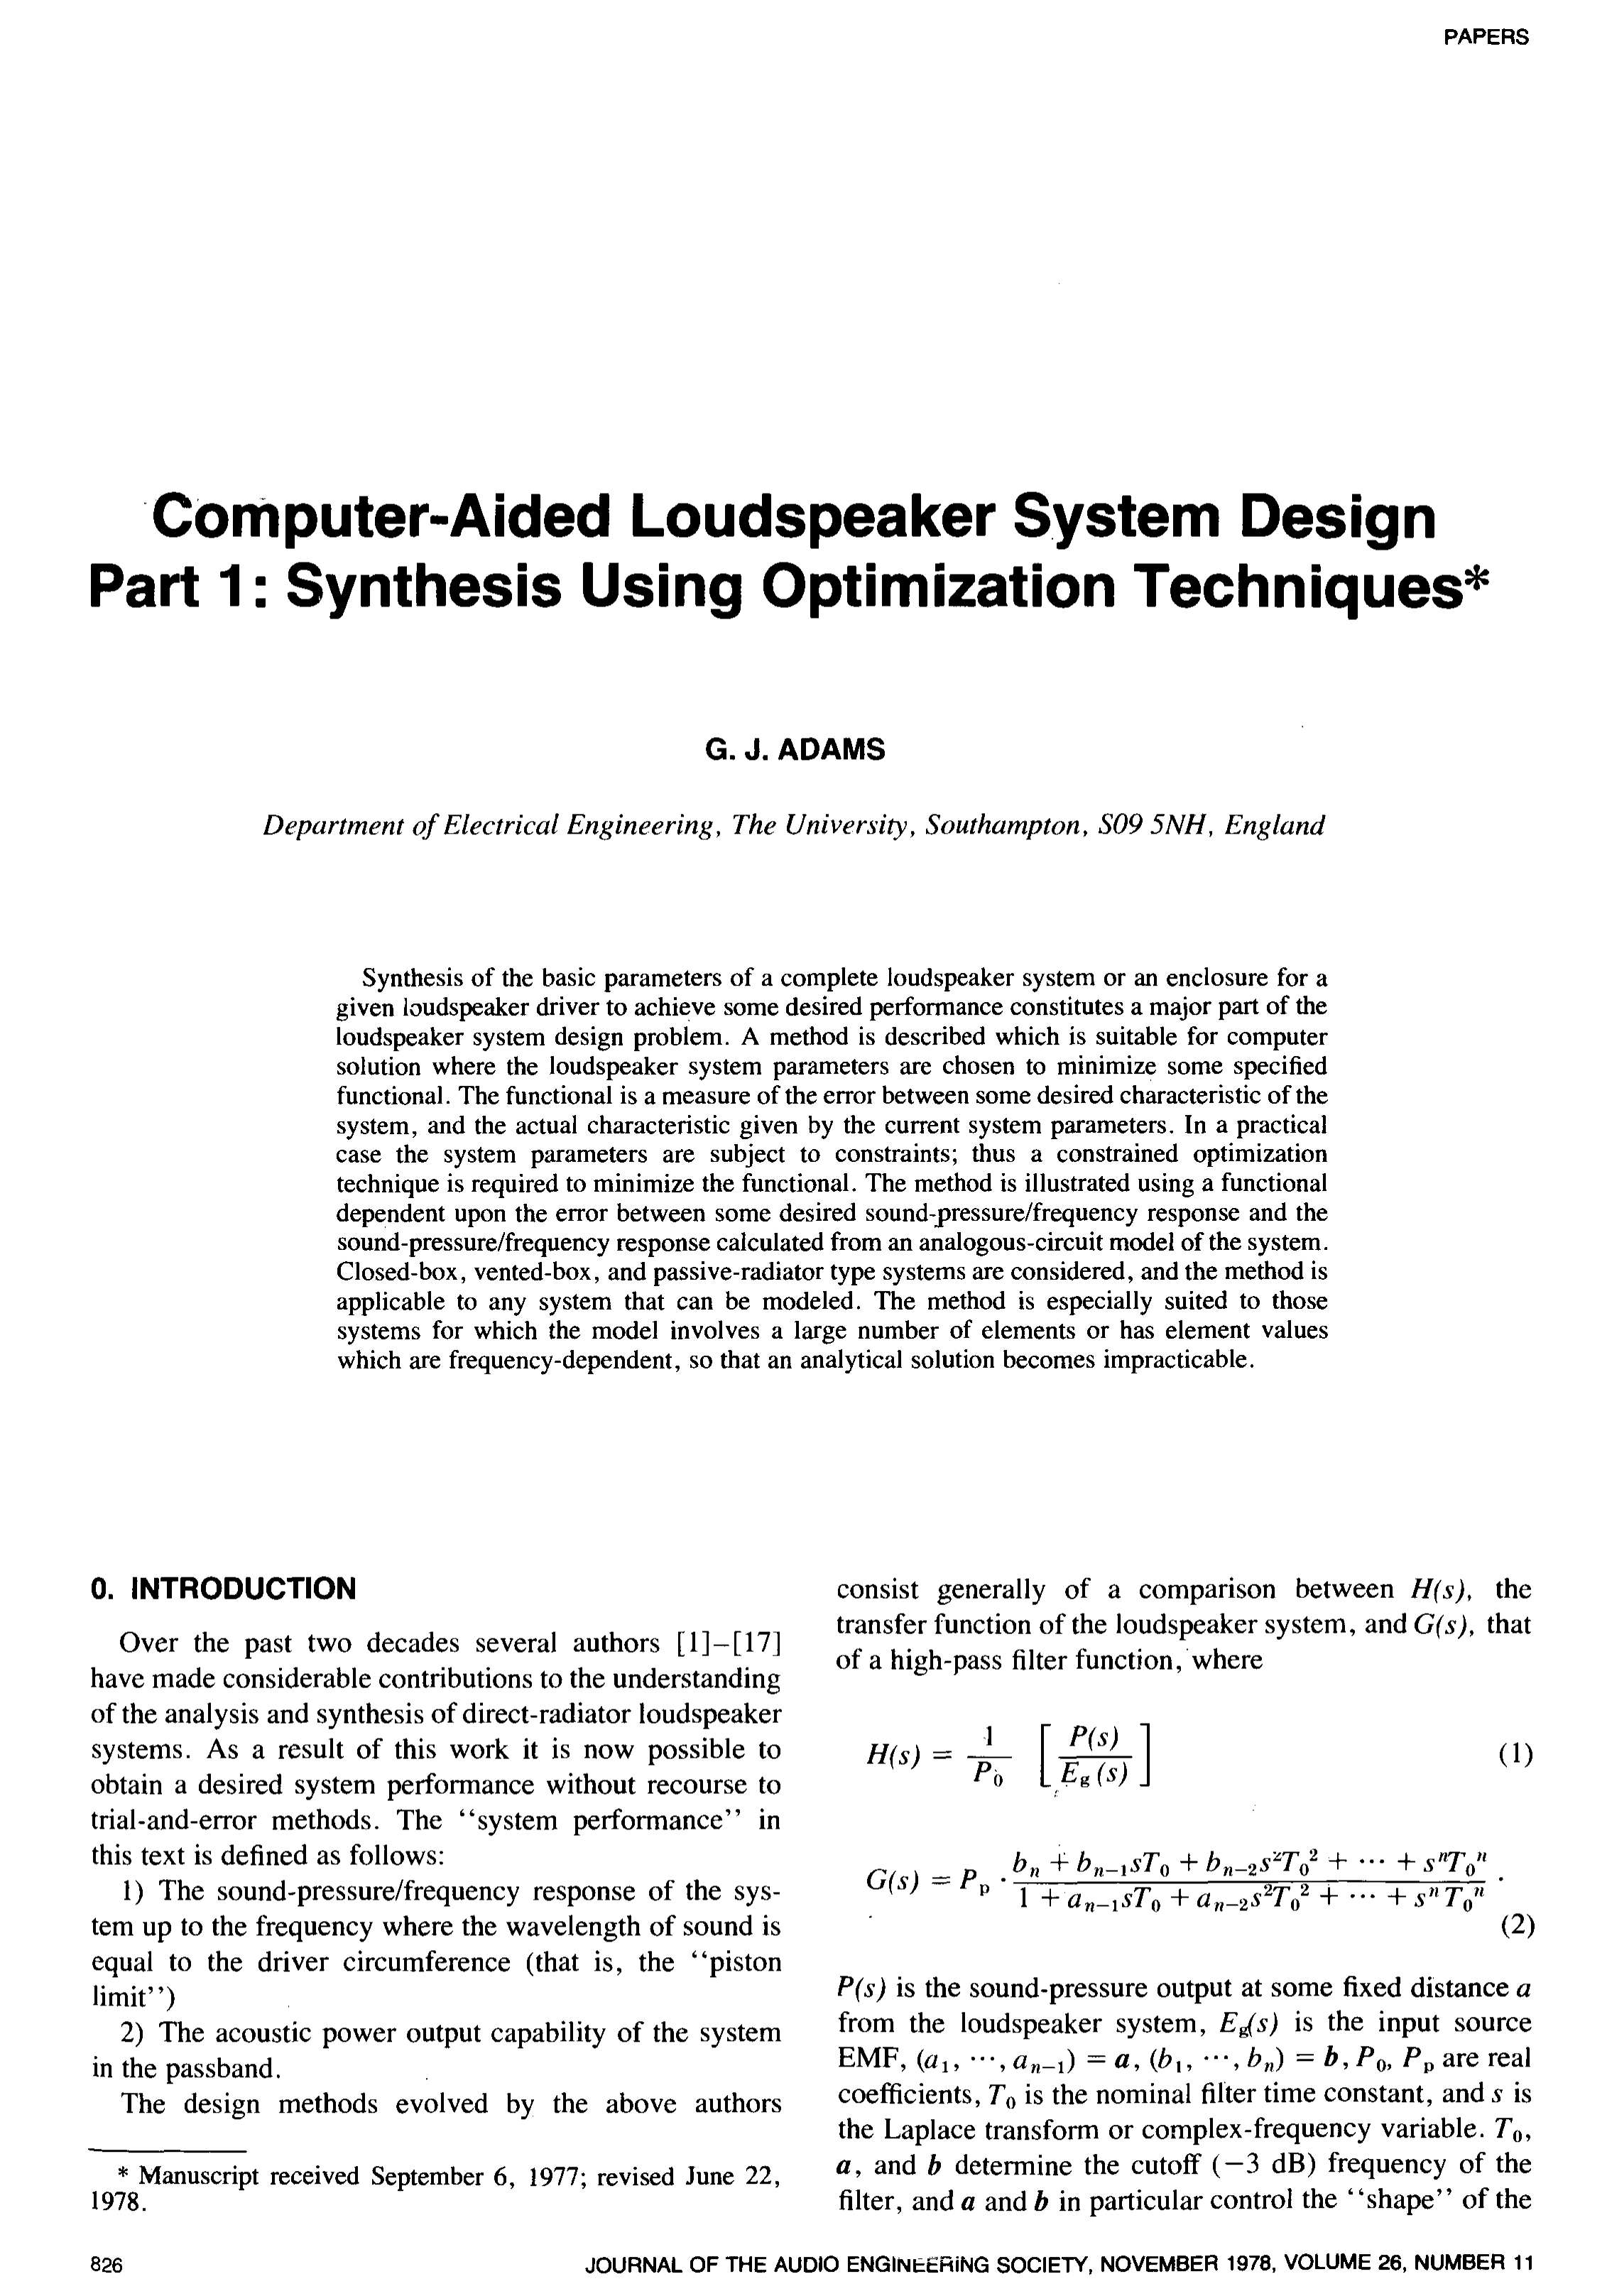 Aes E Library Computer Aided Loudspeaker System Design Part 1 Synthetic Inductor Based High Pass Audio Filter Circuit Synthesis Using Optimization Techniques